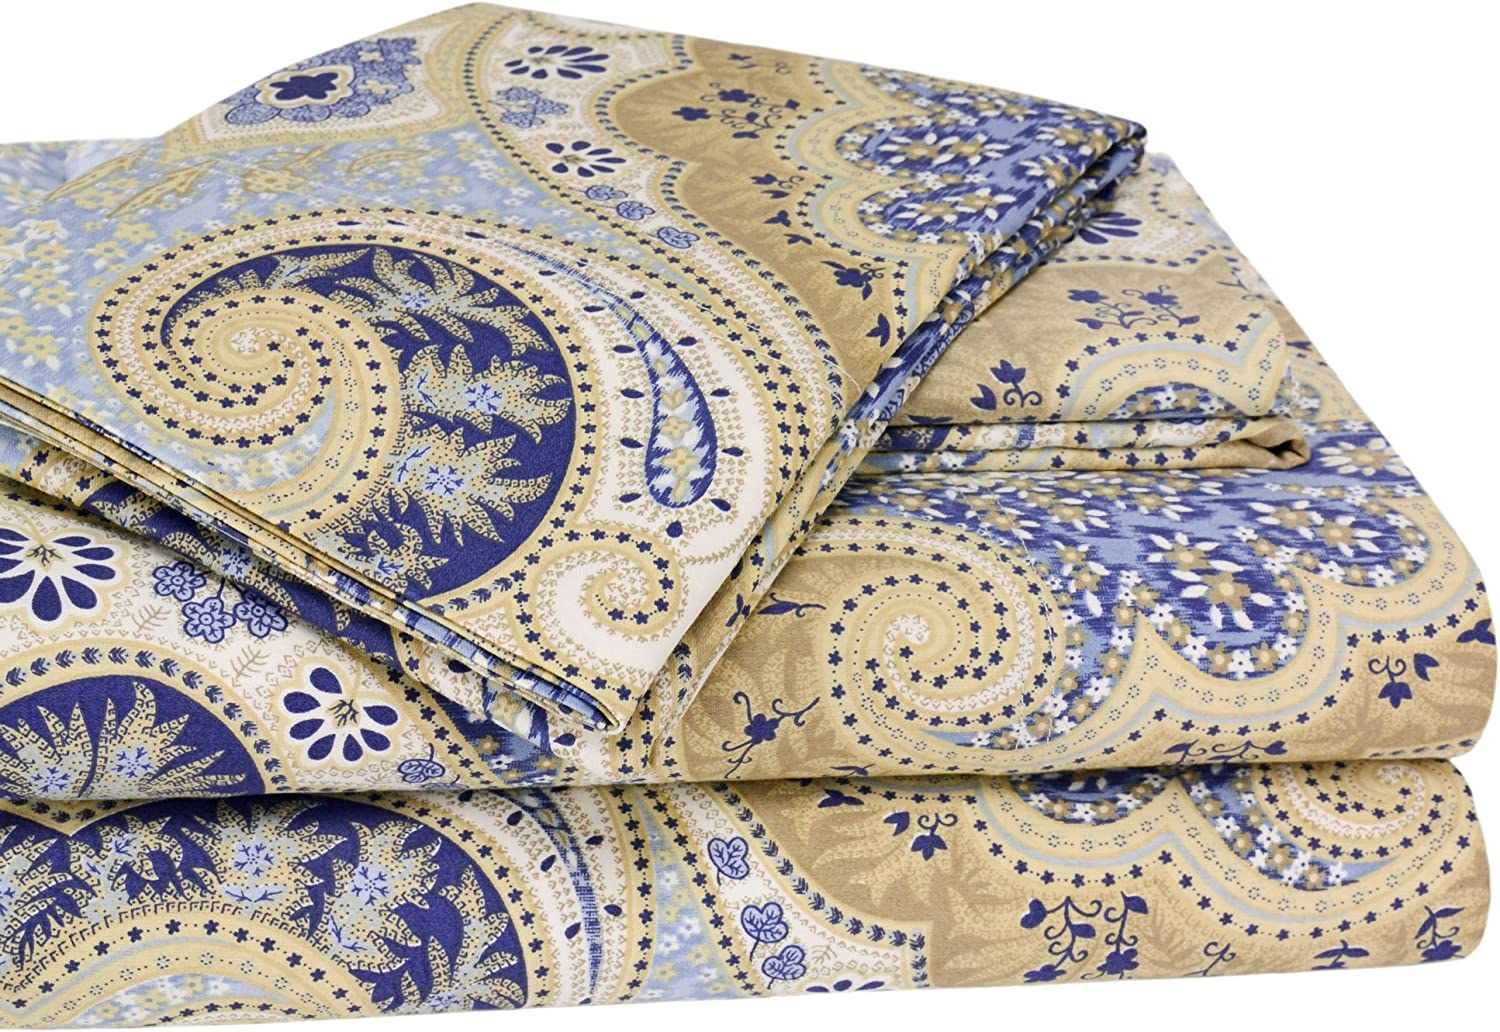 Elite Home Products Milano Paisley Collection 300 Thread Count Sateen 4-Piece Sheet Set, Queen, bluee